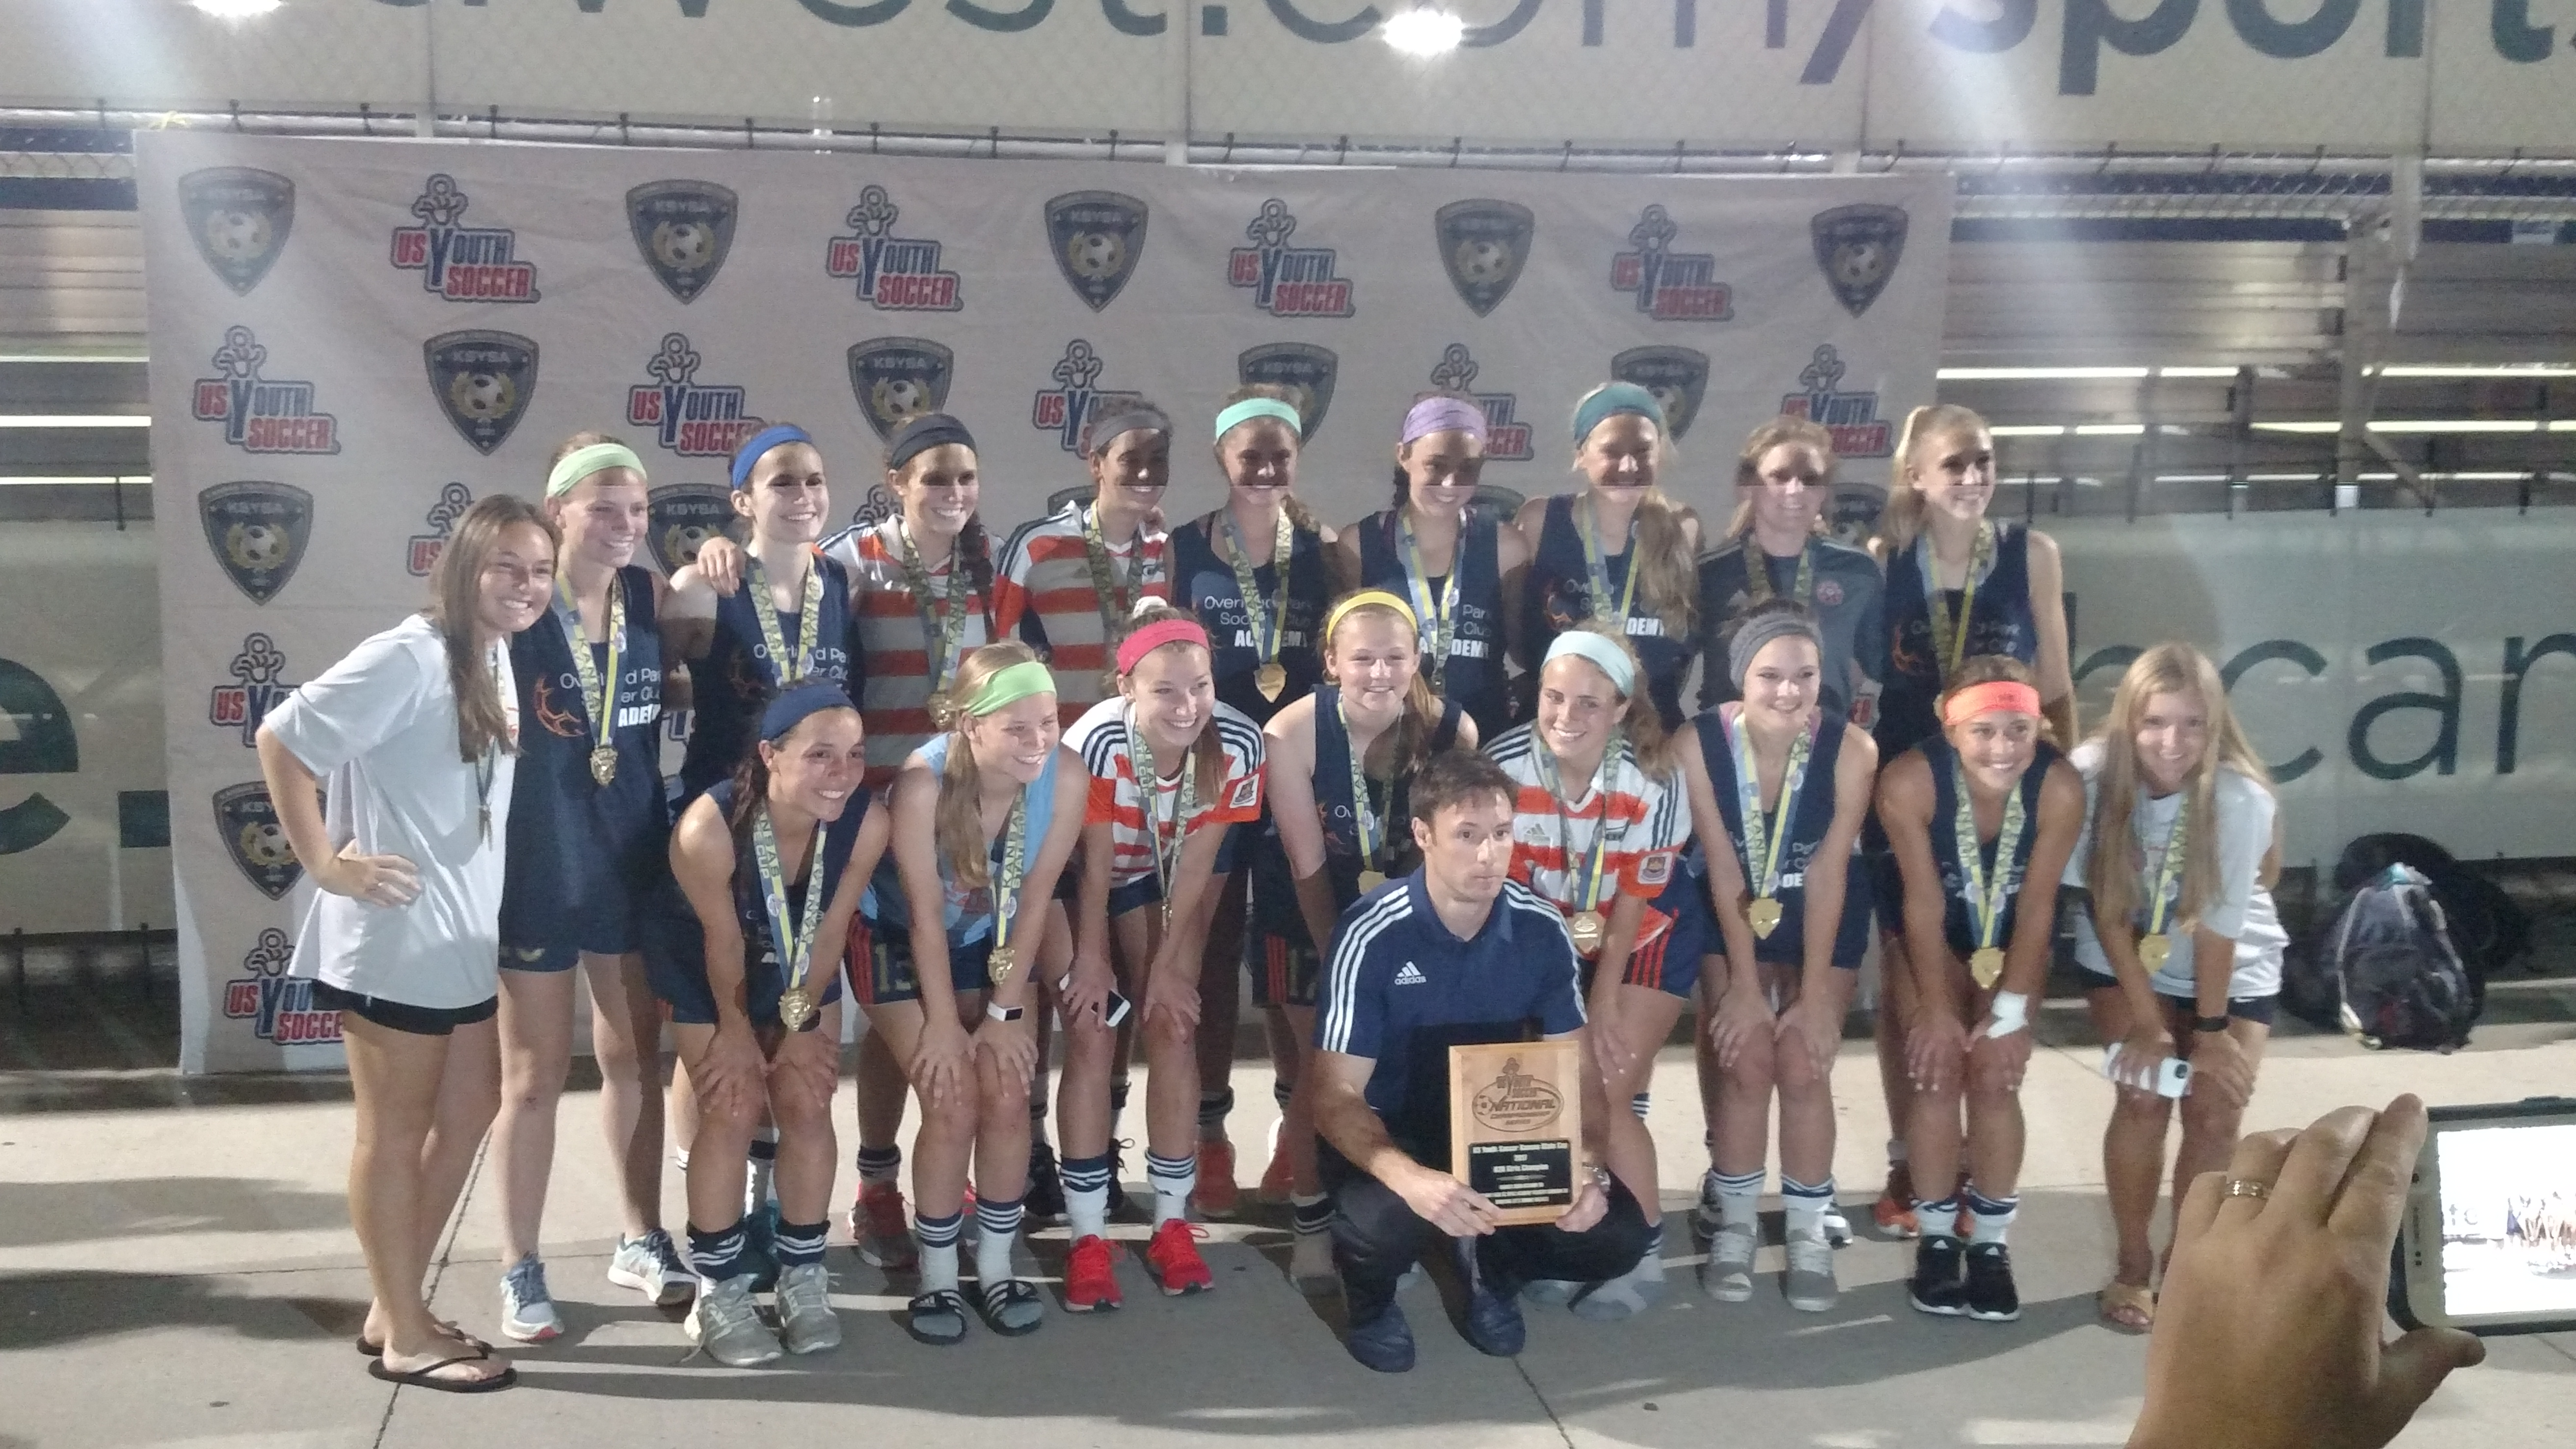 Congratulations to the newly crowned Kansas State Champions - OPSC Velocity Girls U19 (1198 birth year. Coached by Max Cookson.